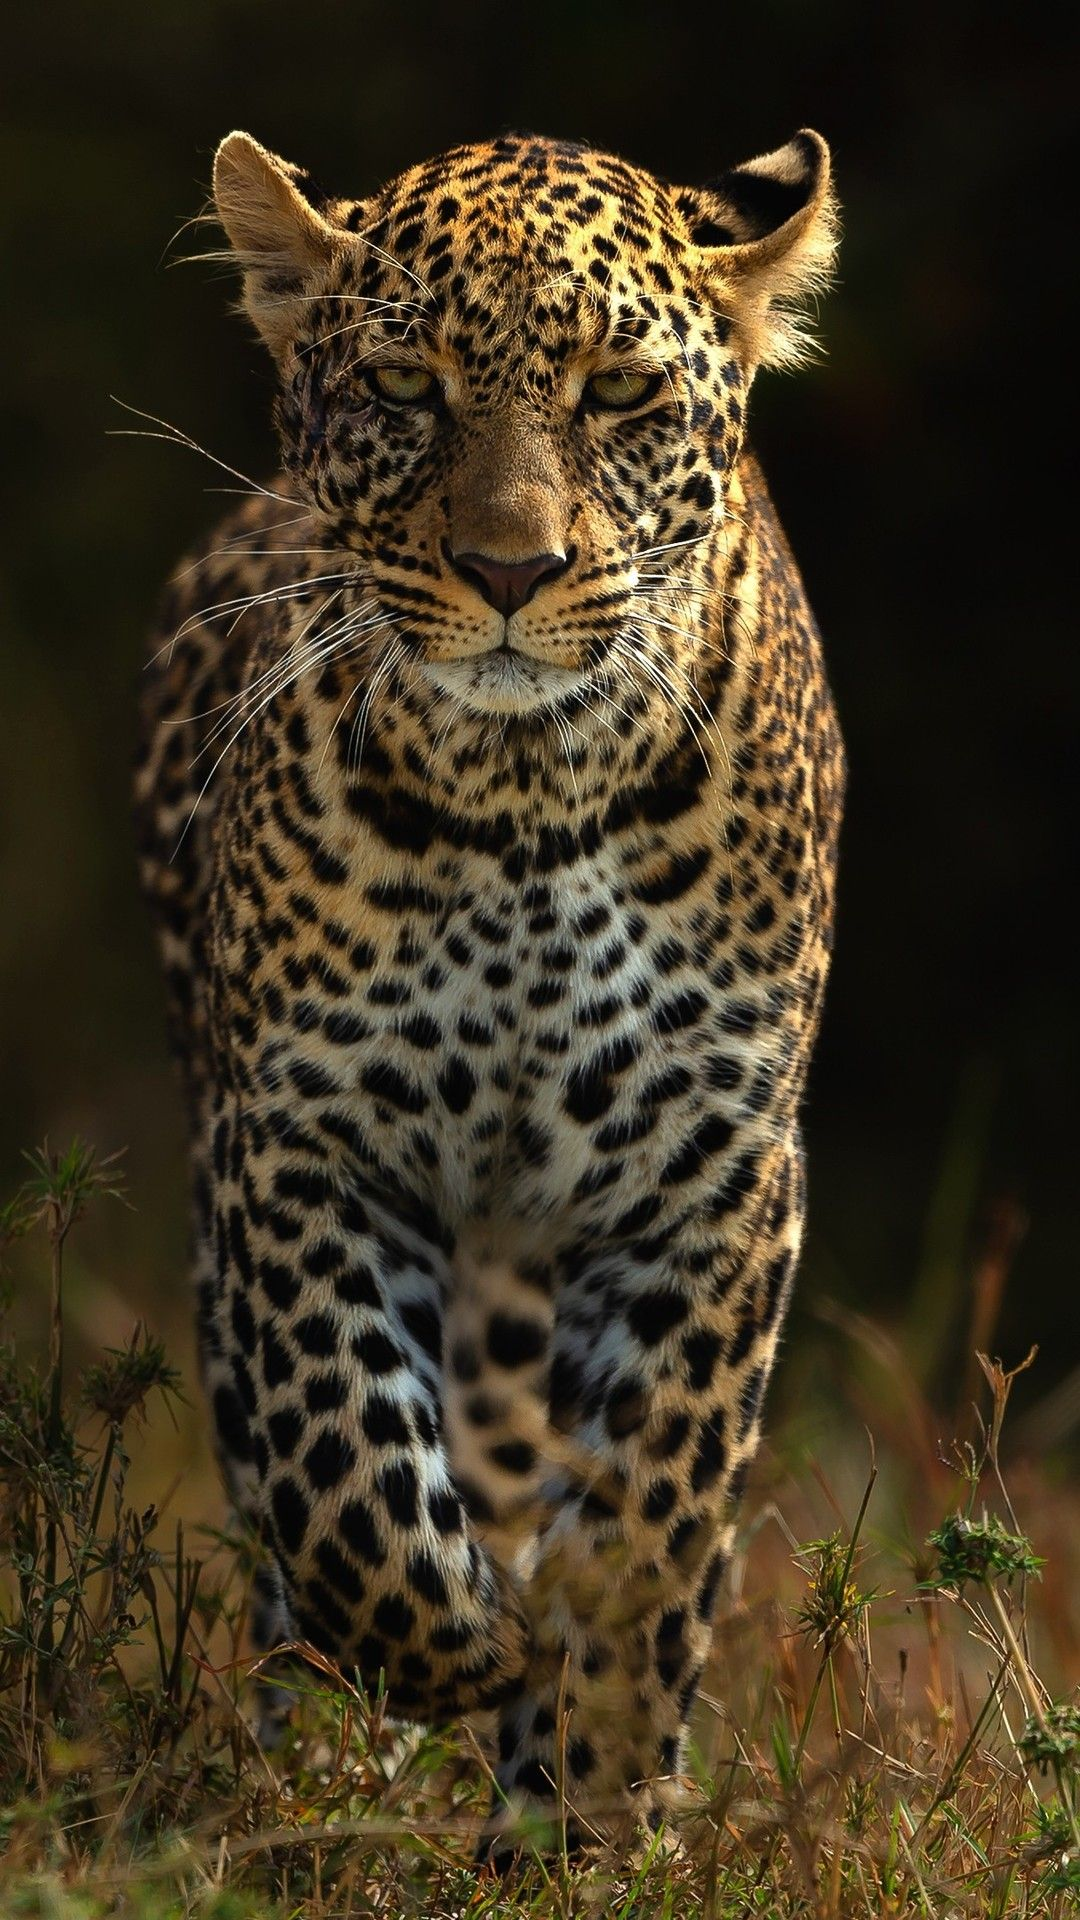 Leopards 4k Mobile Wallpaper Iphone Android Samsung Pixel Xiaomi In 2020 Leopard Wallpaper Tiger Wallpaper Mobile Wallpaper